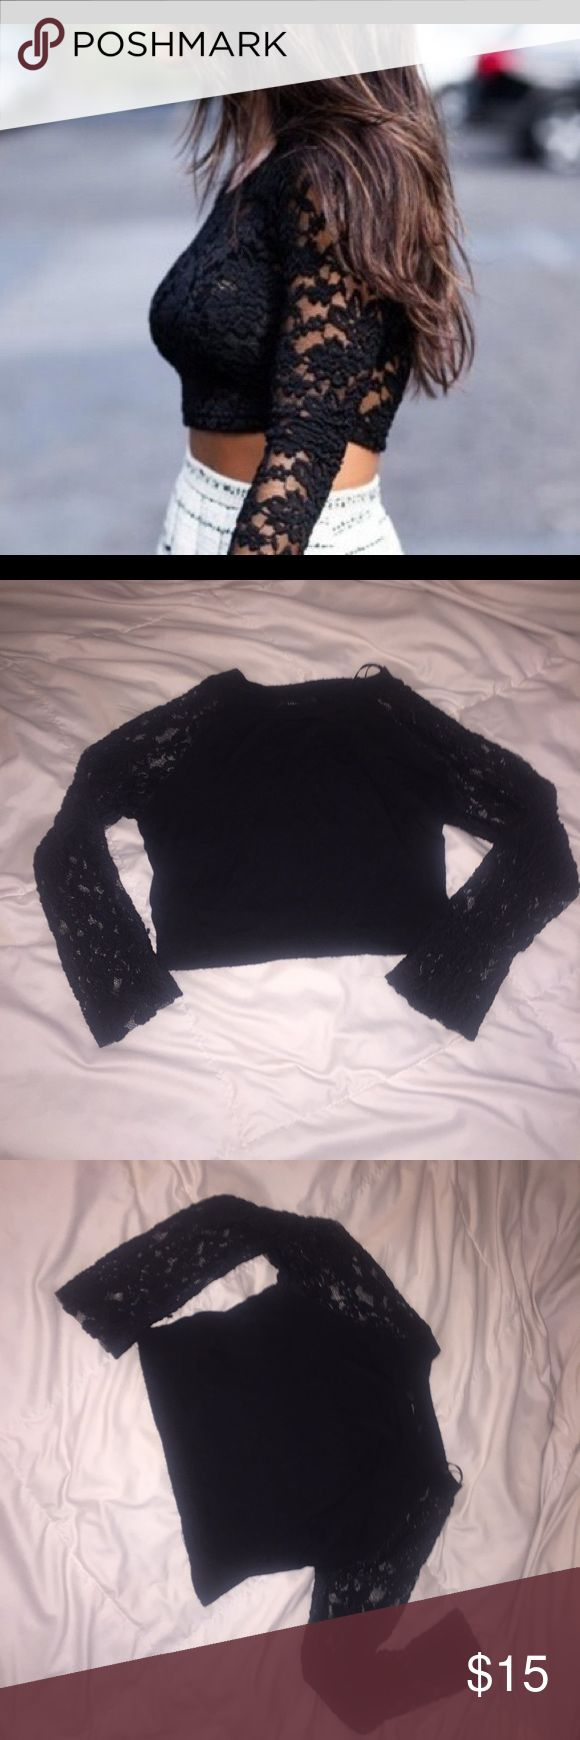 💋Black Lace Crop top Black Lace Crop Top. Size small. 3/4 long sleeve. Only the sleeves are see through. NWOT. Perfect new condition Tops Crop Tops